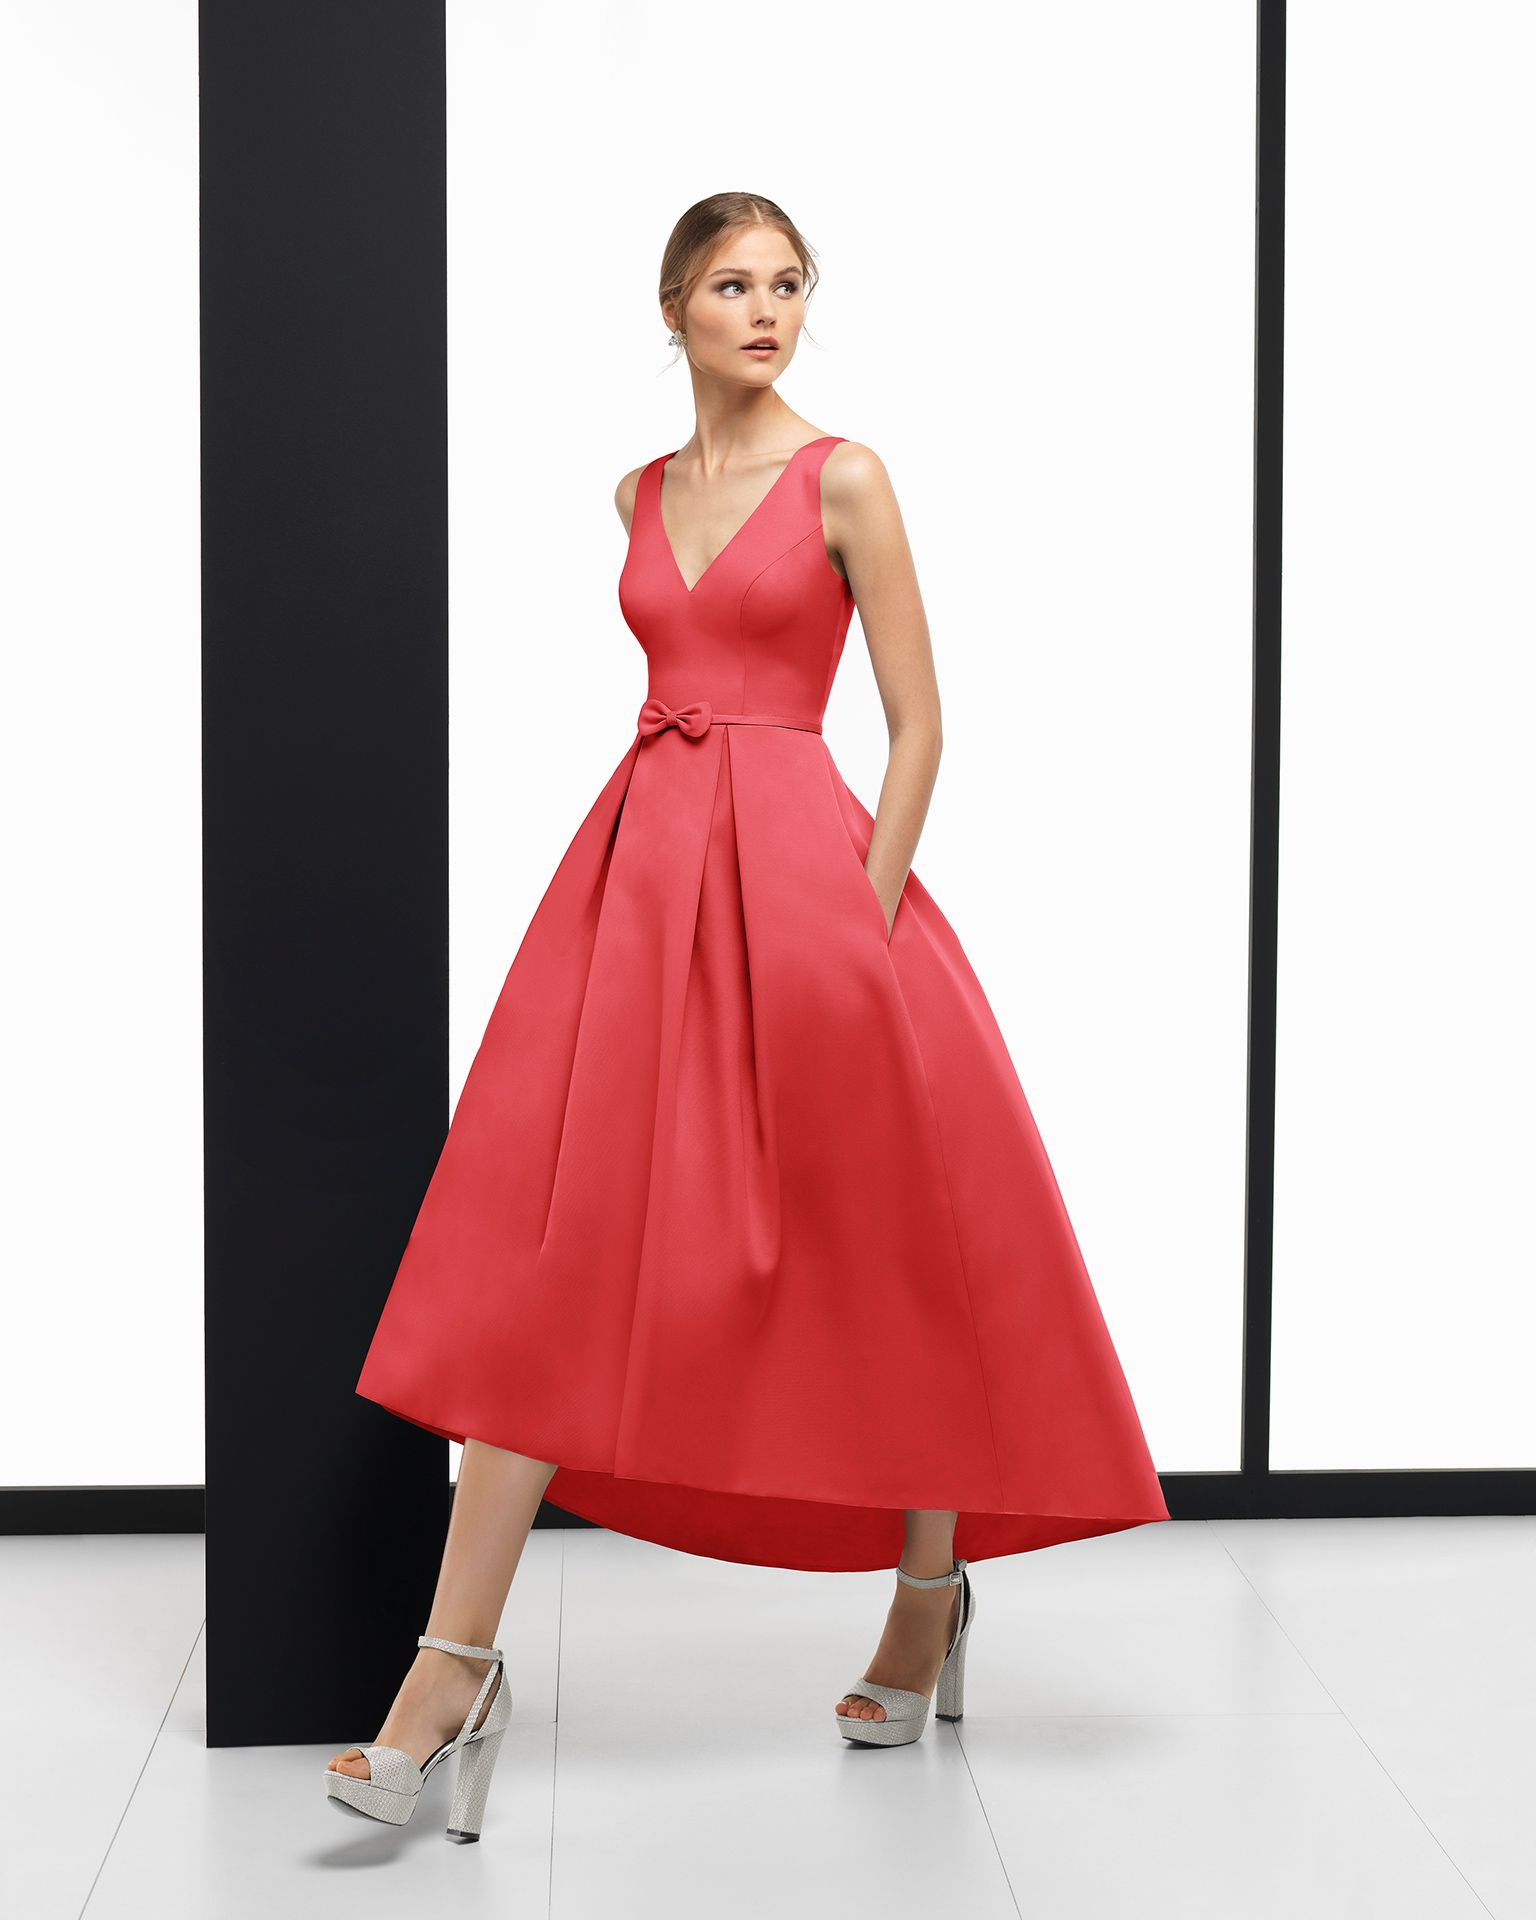 82c864b7f 2T180 - Cocktail 2018. ROSA CLARA COCKTAIL Collection